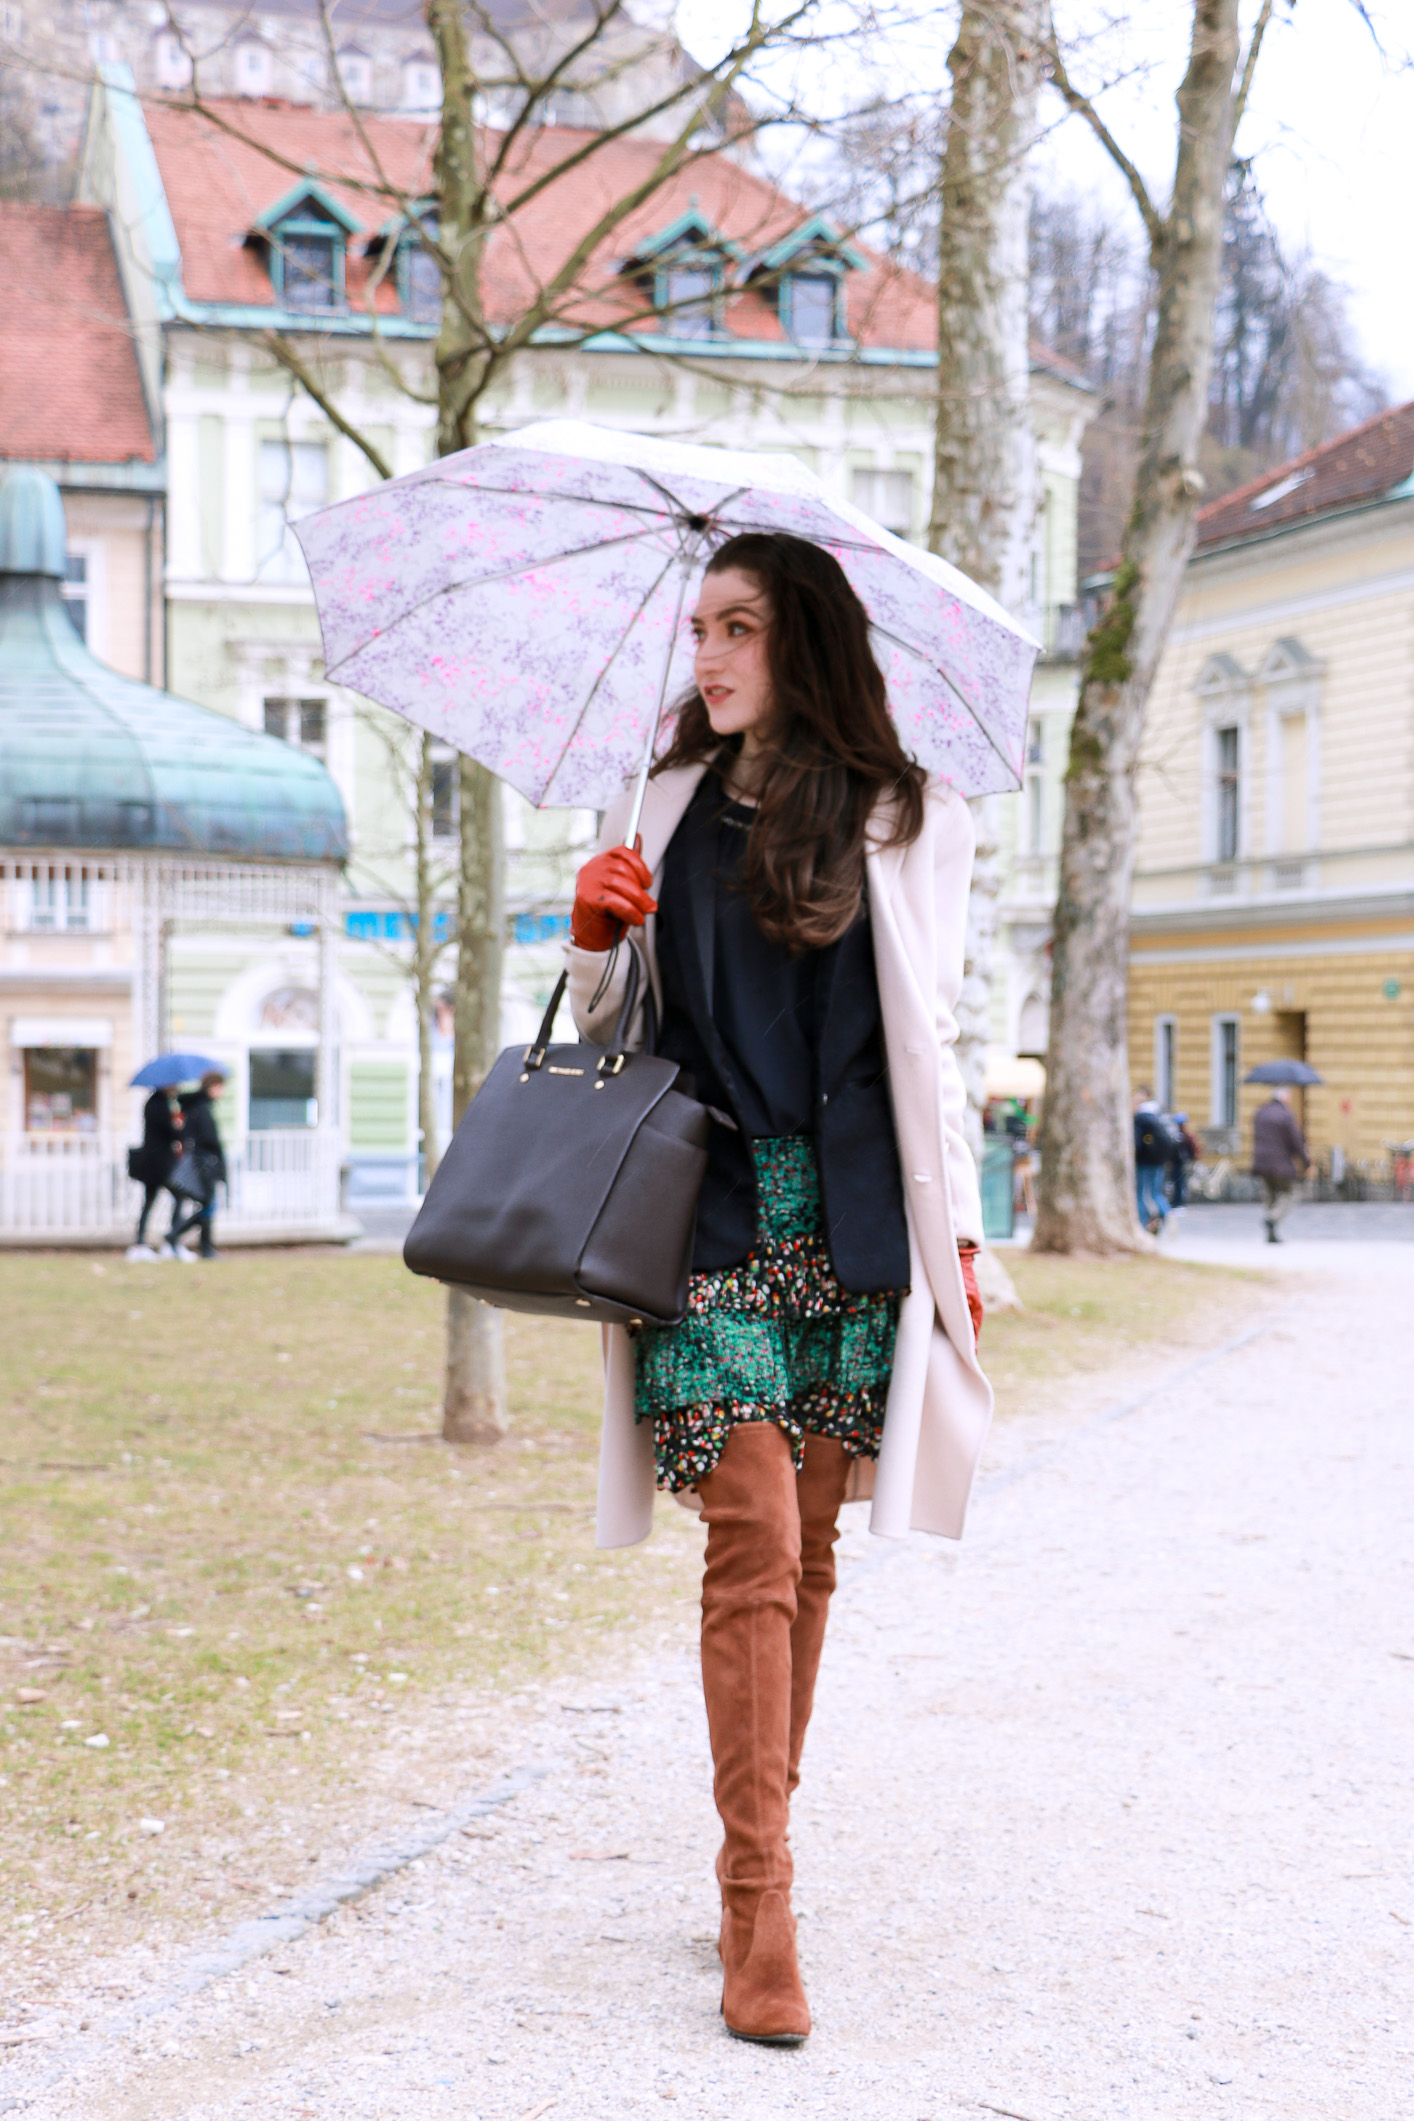 Fashion blogger Veronika Lipar of Brunette From Wall Street sharing how to wear a boho ruffled skirt in the city and look elegant